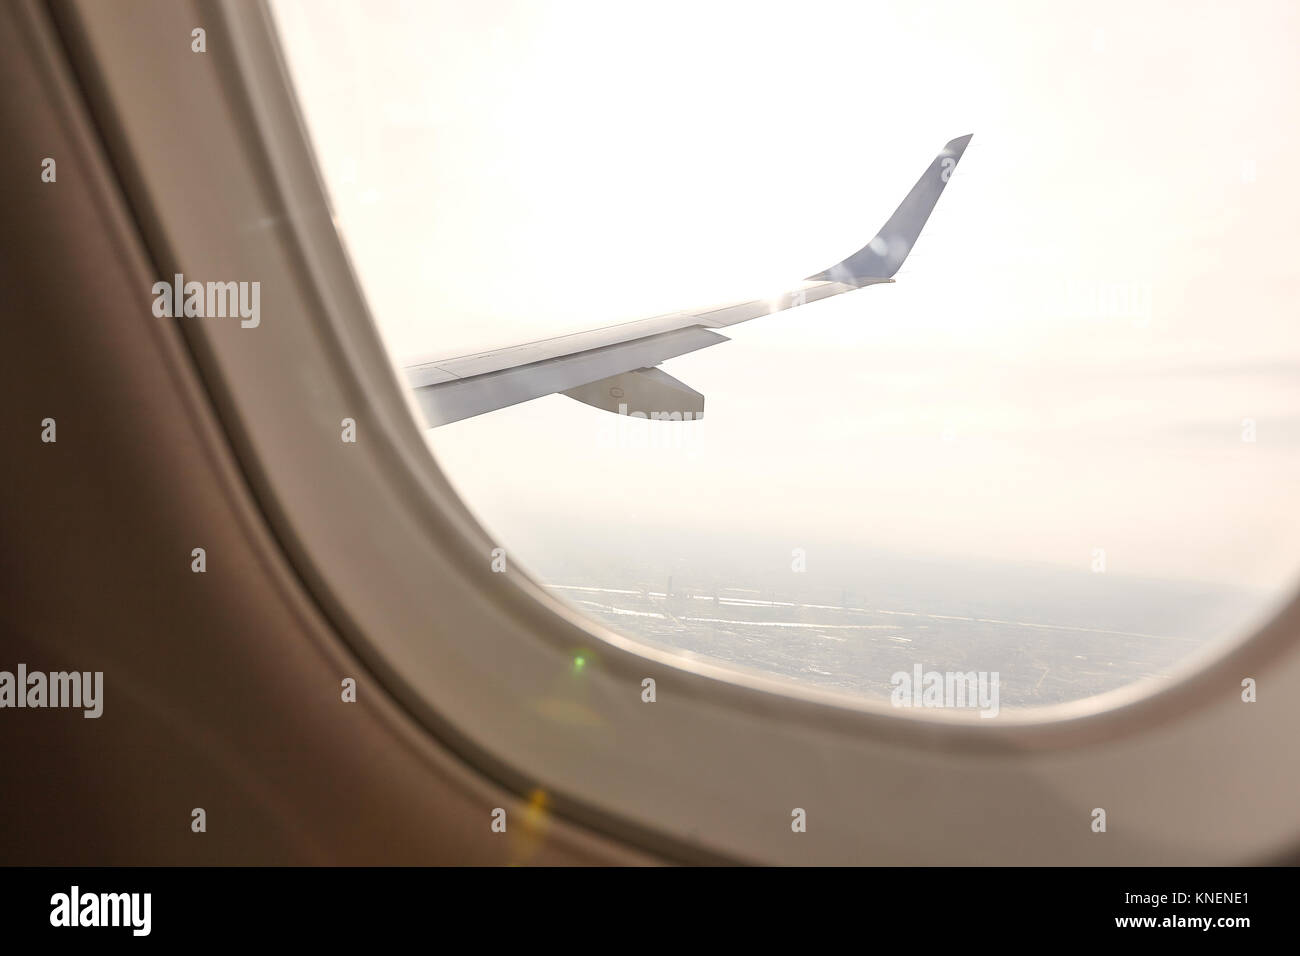 View from aeroplane window of another plane - Stock Image